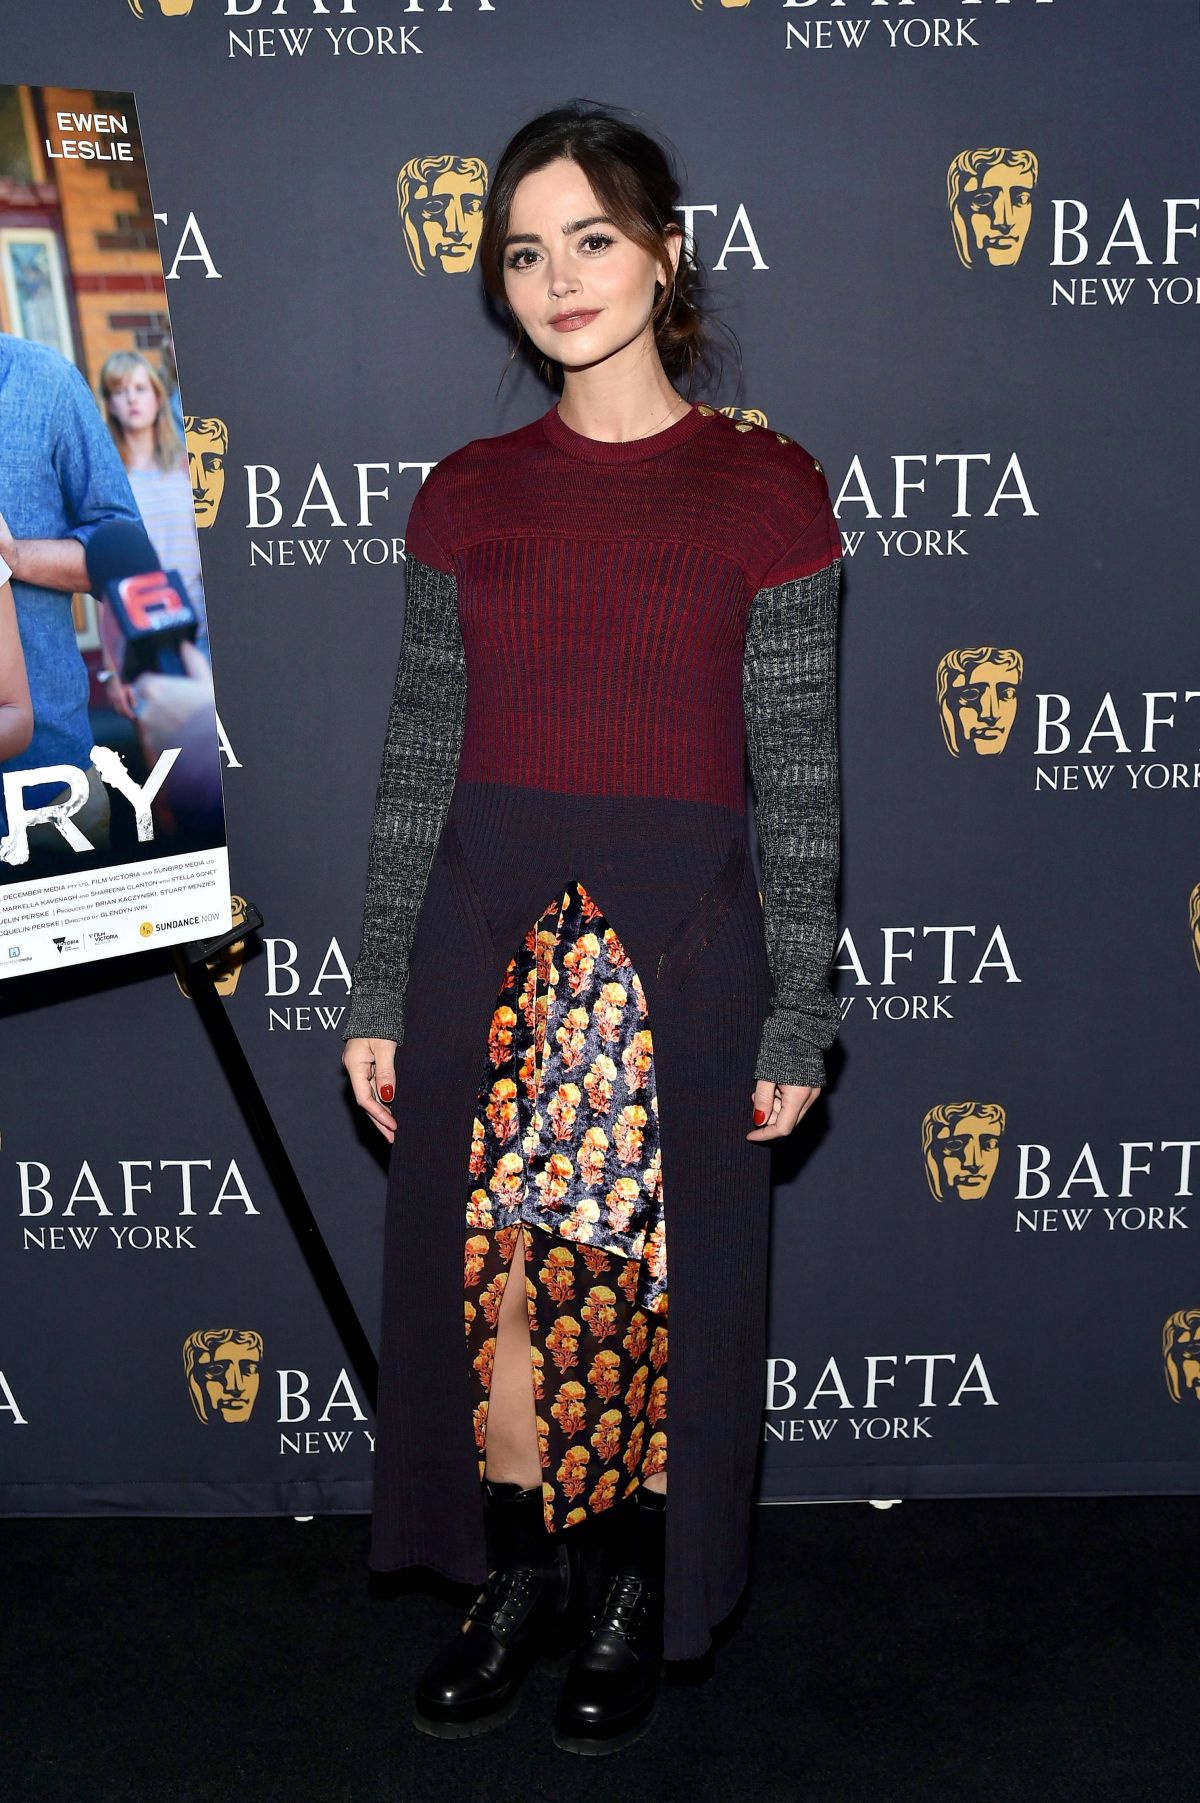 JENNA LOUISE COLEMAN at The Cry Bafta Screening in New York 01/10/2019